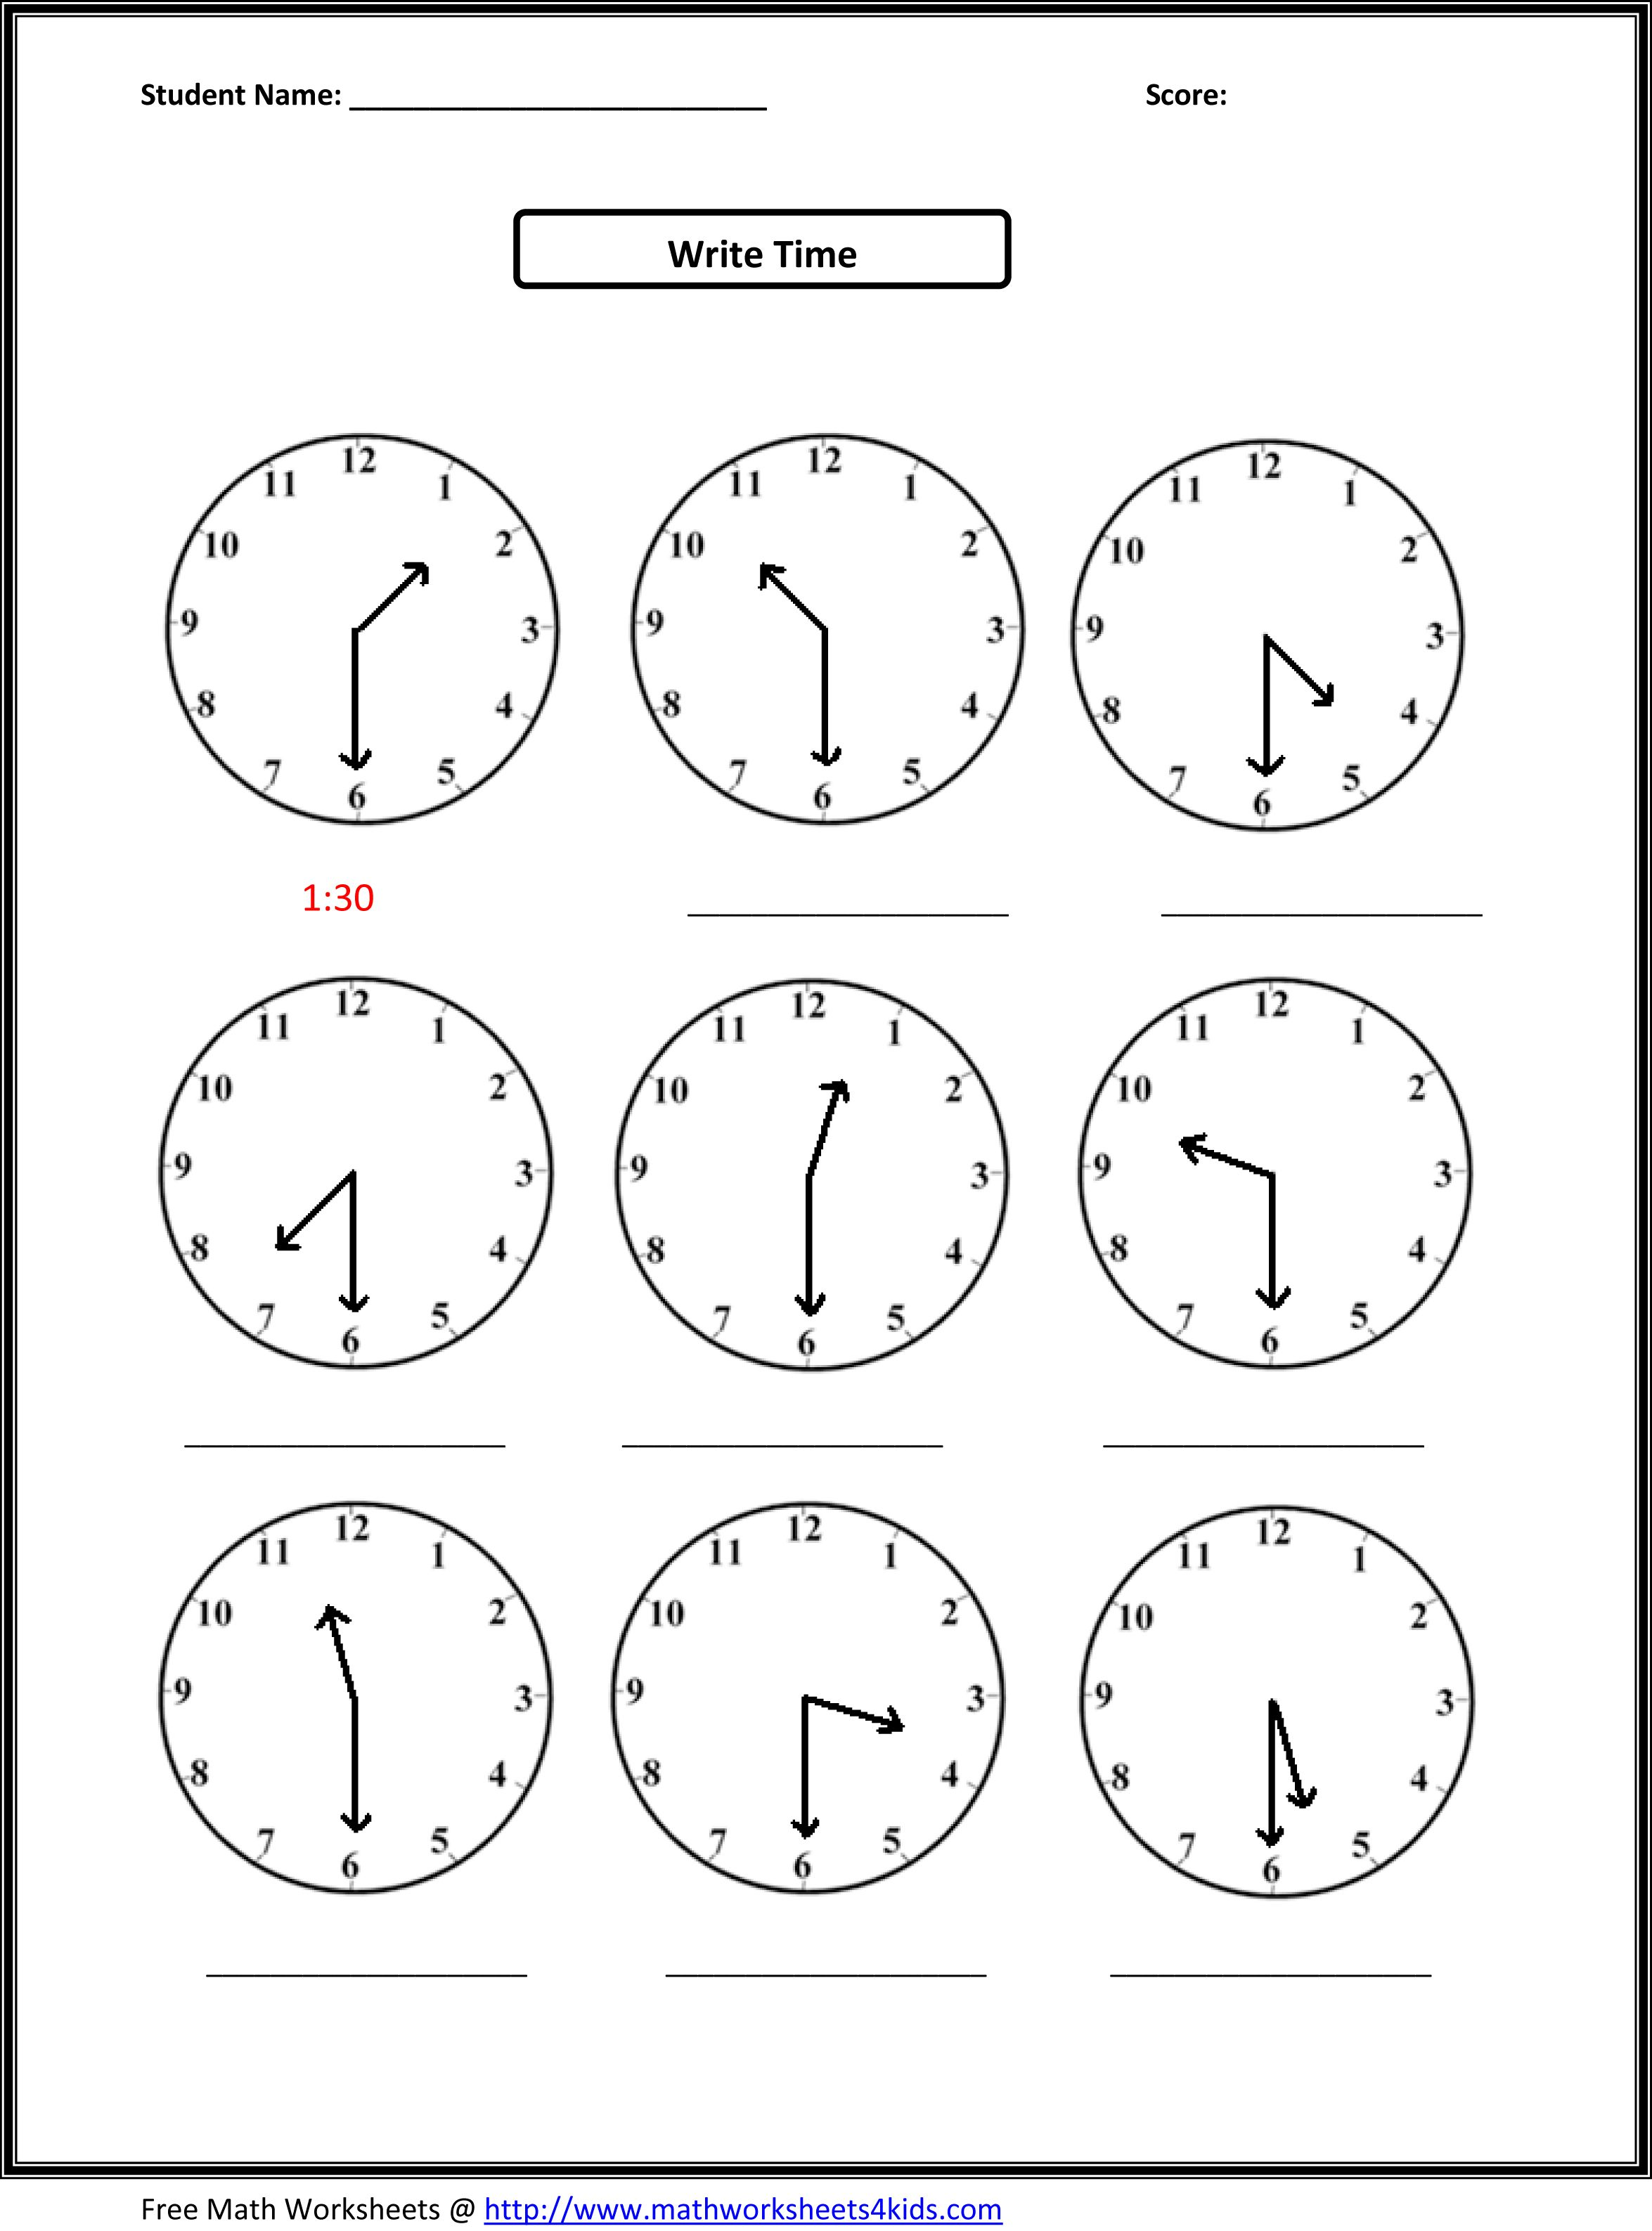 Weirdmailus  Remarkable Worksheet On Time For Grade   Reocurent With Lovable Free Printable Telling Time Worksheets Nd Grade  Reocurent With Archaic Converting Liters To Milliliters Worksheet Also Hot And Cold Worksheets In Addition Phonemic Awareness Worksheet And Schedule Planning Worksheet As Well As Plural Or Possessive Worksheet Additionally Th Grade Rounding Worksheets From Reocurentcom With Weirdmailus  Lovable Worksheet On Time For Grade   Reocurent With Archaic Free Printable Telling Time Worksheets Nd Grade  Reocurent And Remarkable Converting Liters To Milliliters Worksheet Also Hot And Cold Worksheets In Addition Phonemic Awareness Worksheet From Reocurentcom